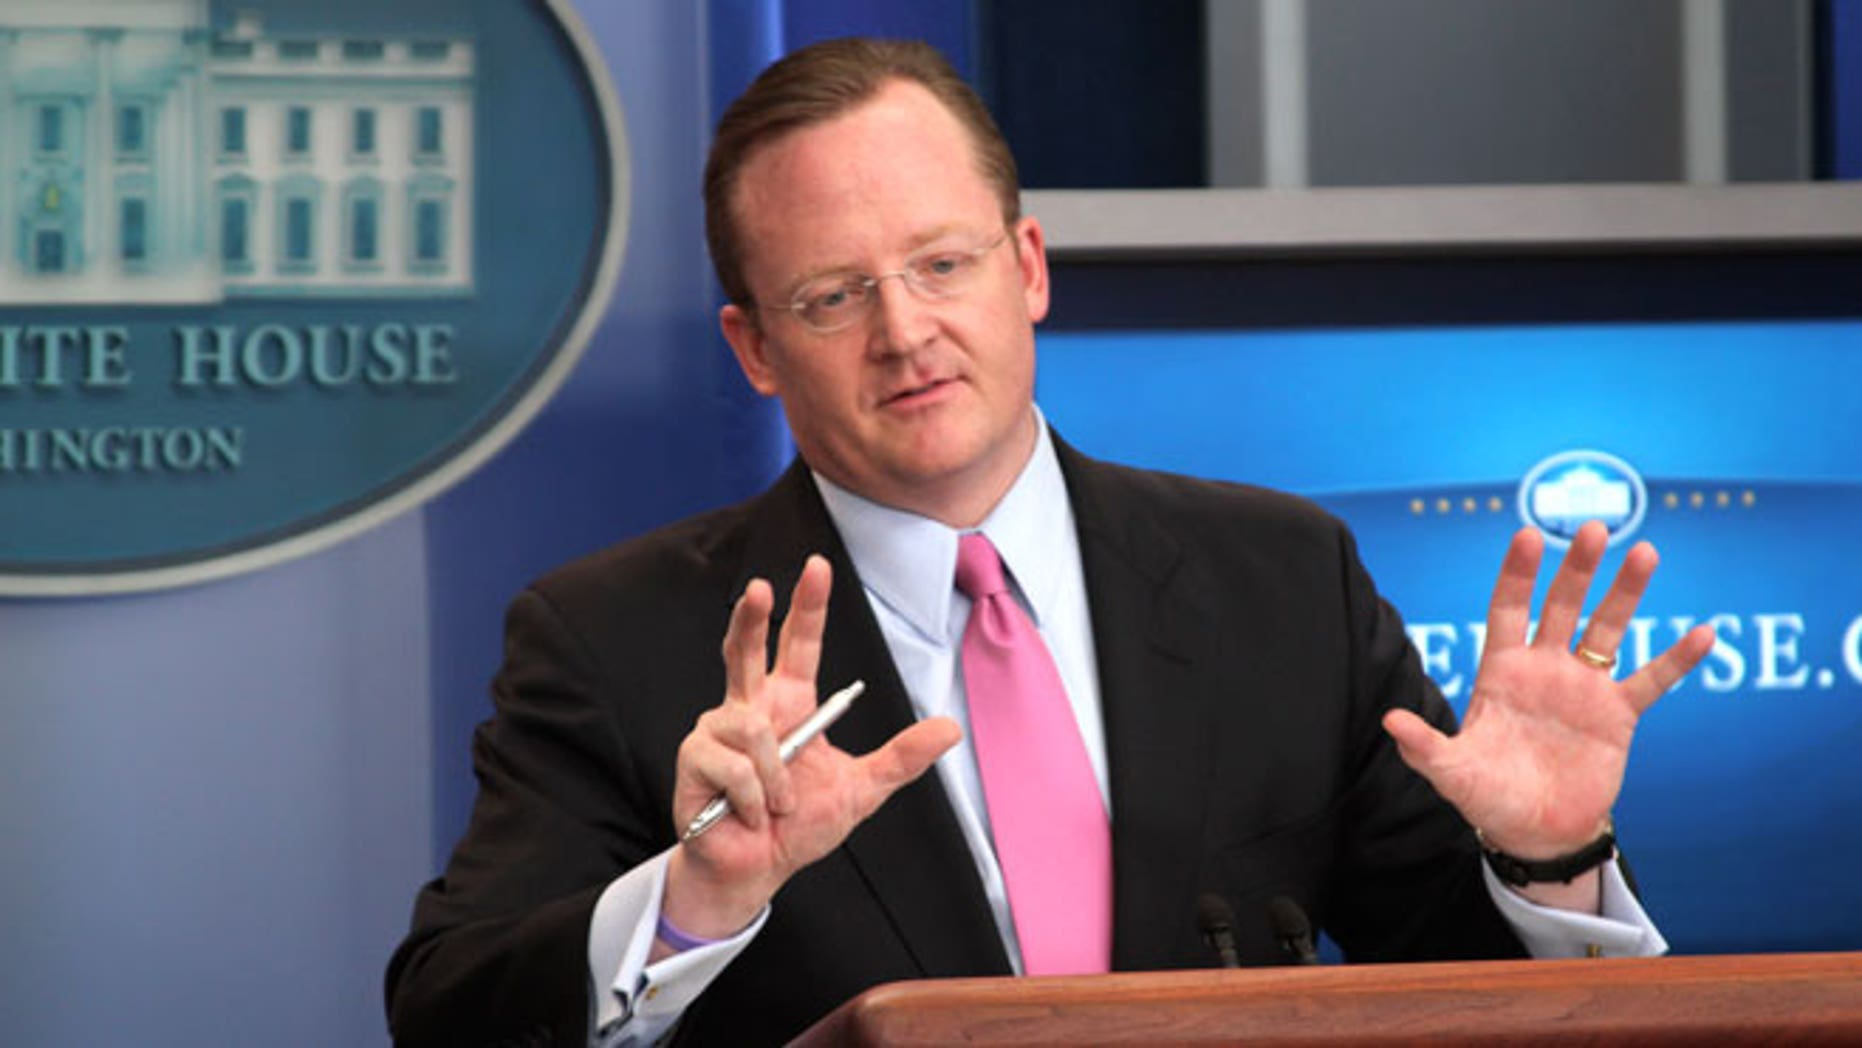 Former White House Press Secretary Robert Gibbs